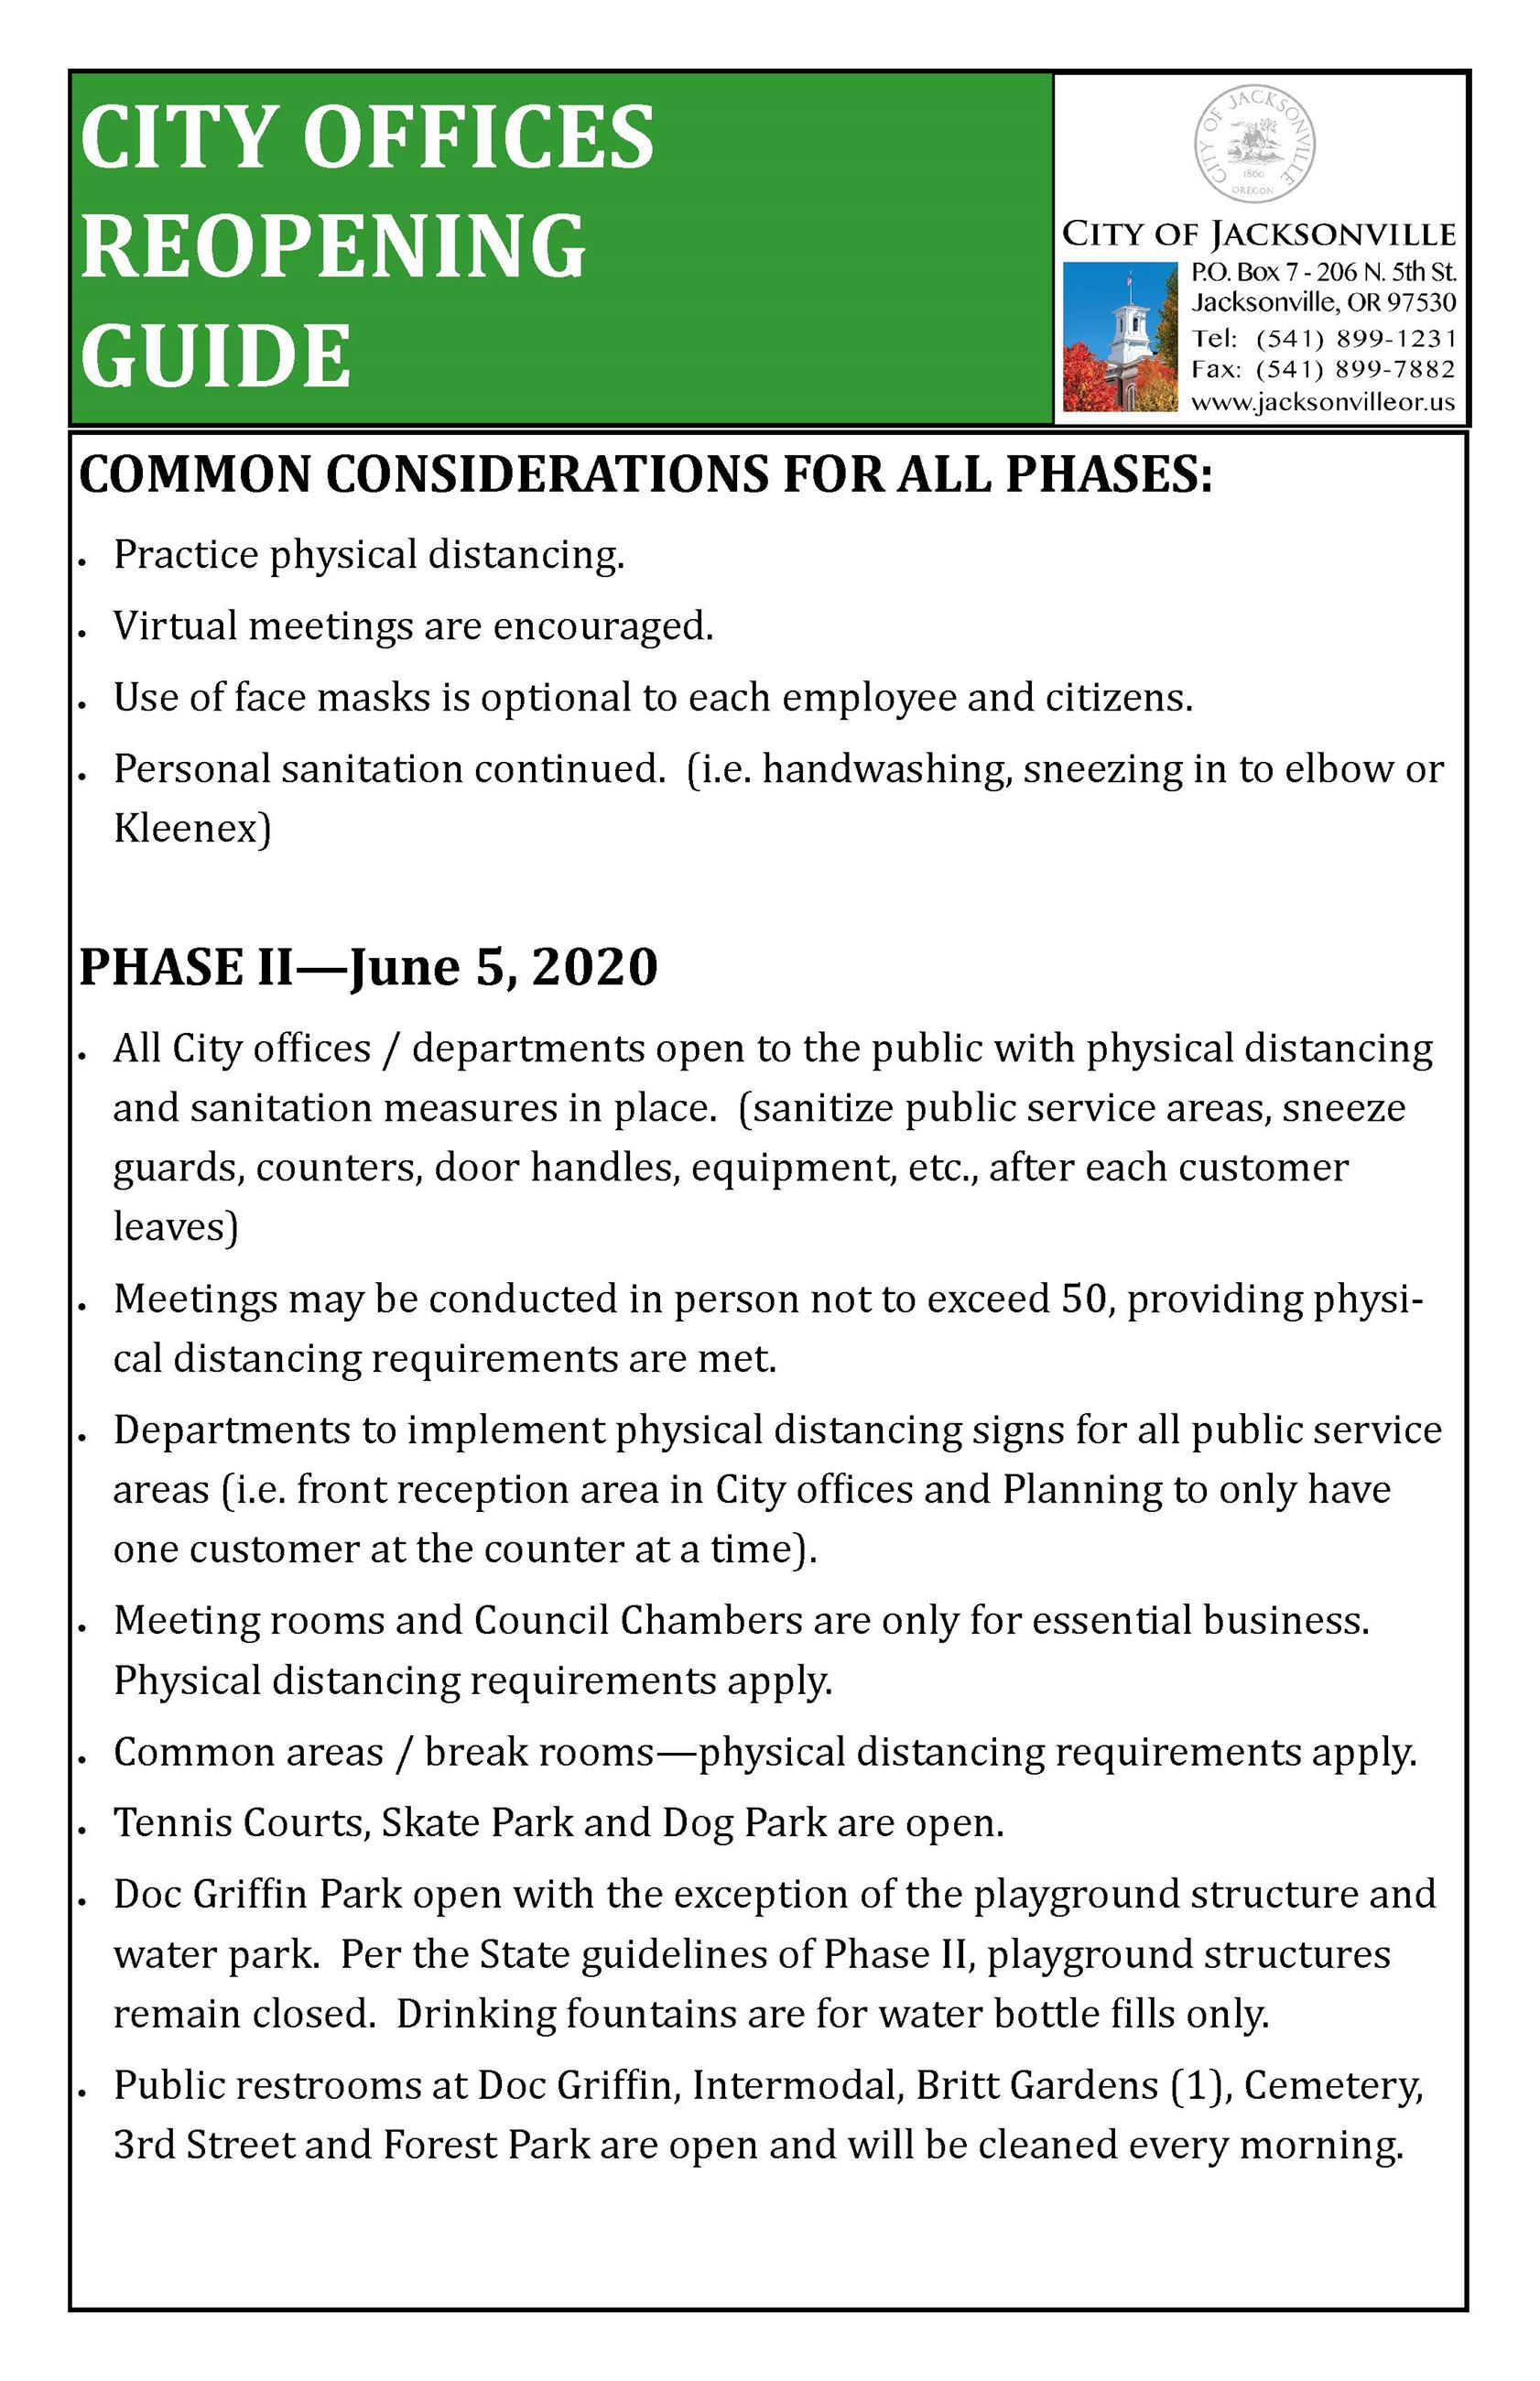 City Offices Reopening Guide  SIGN_Phase 2